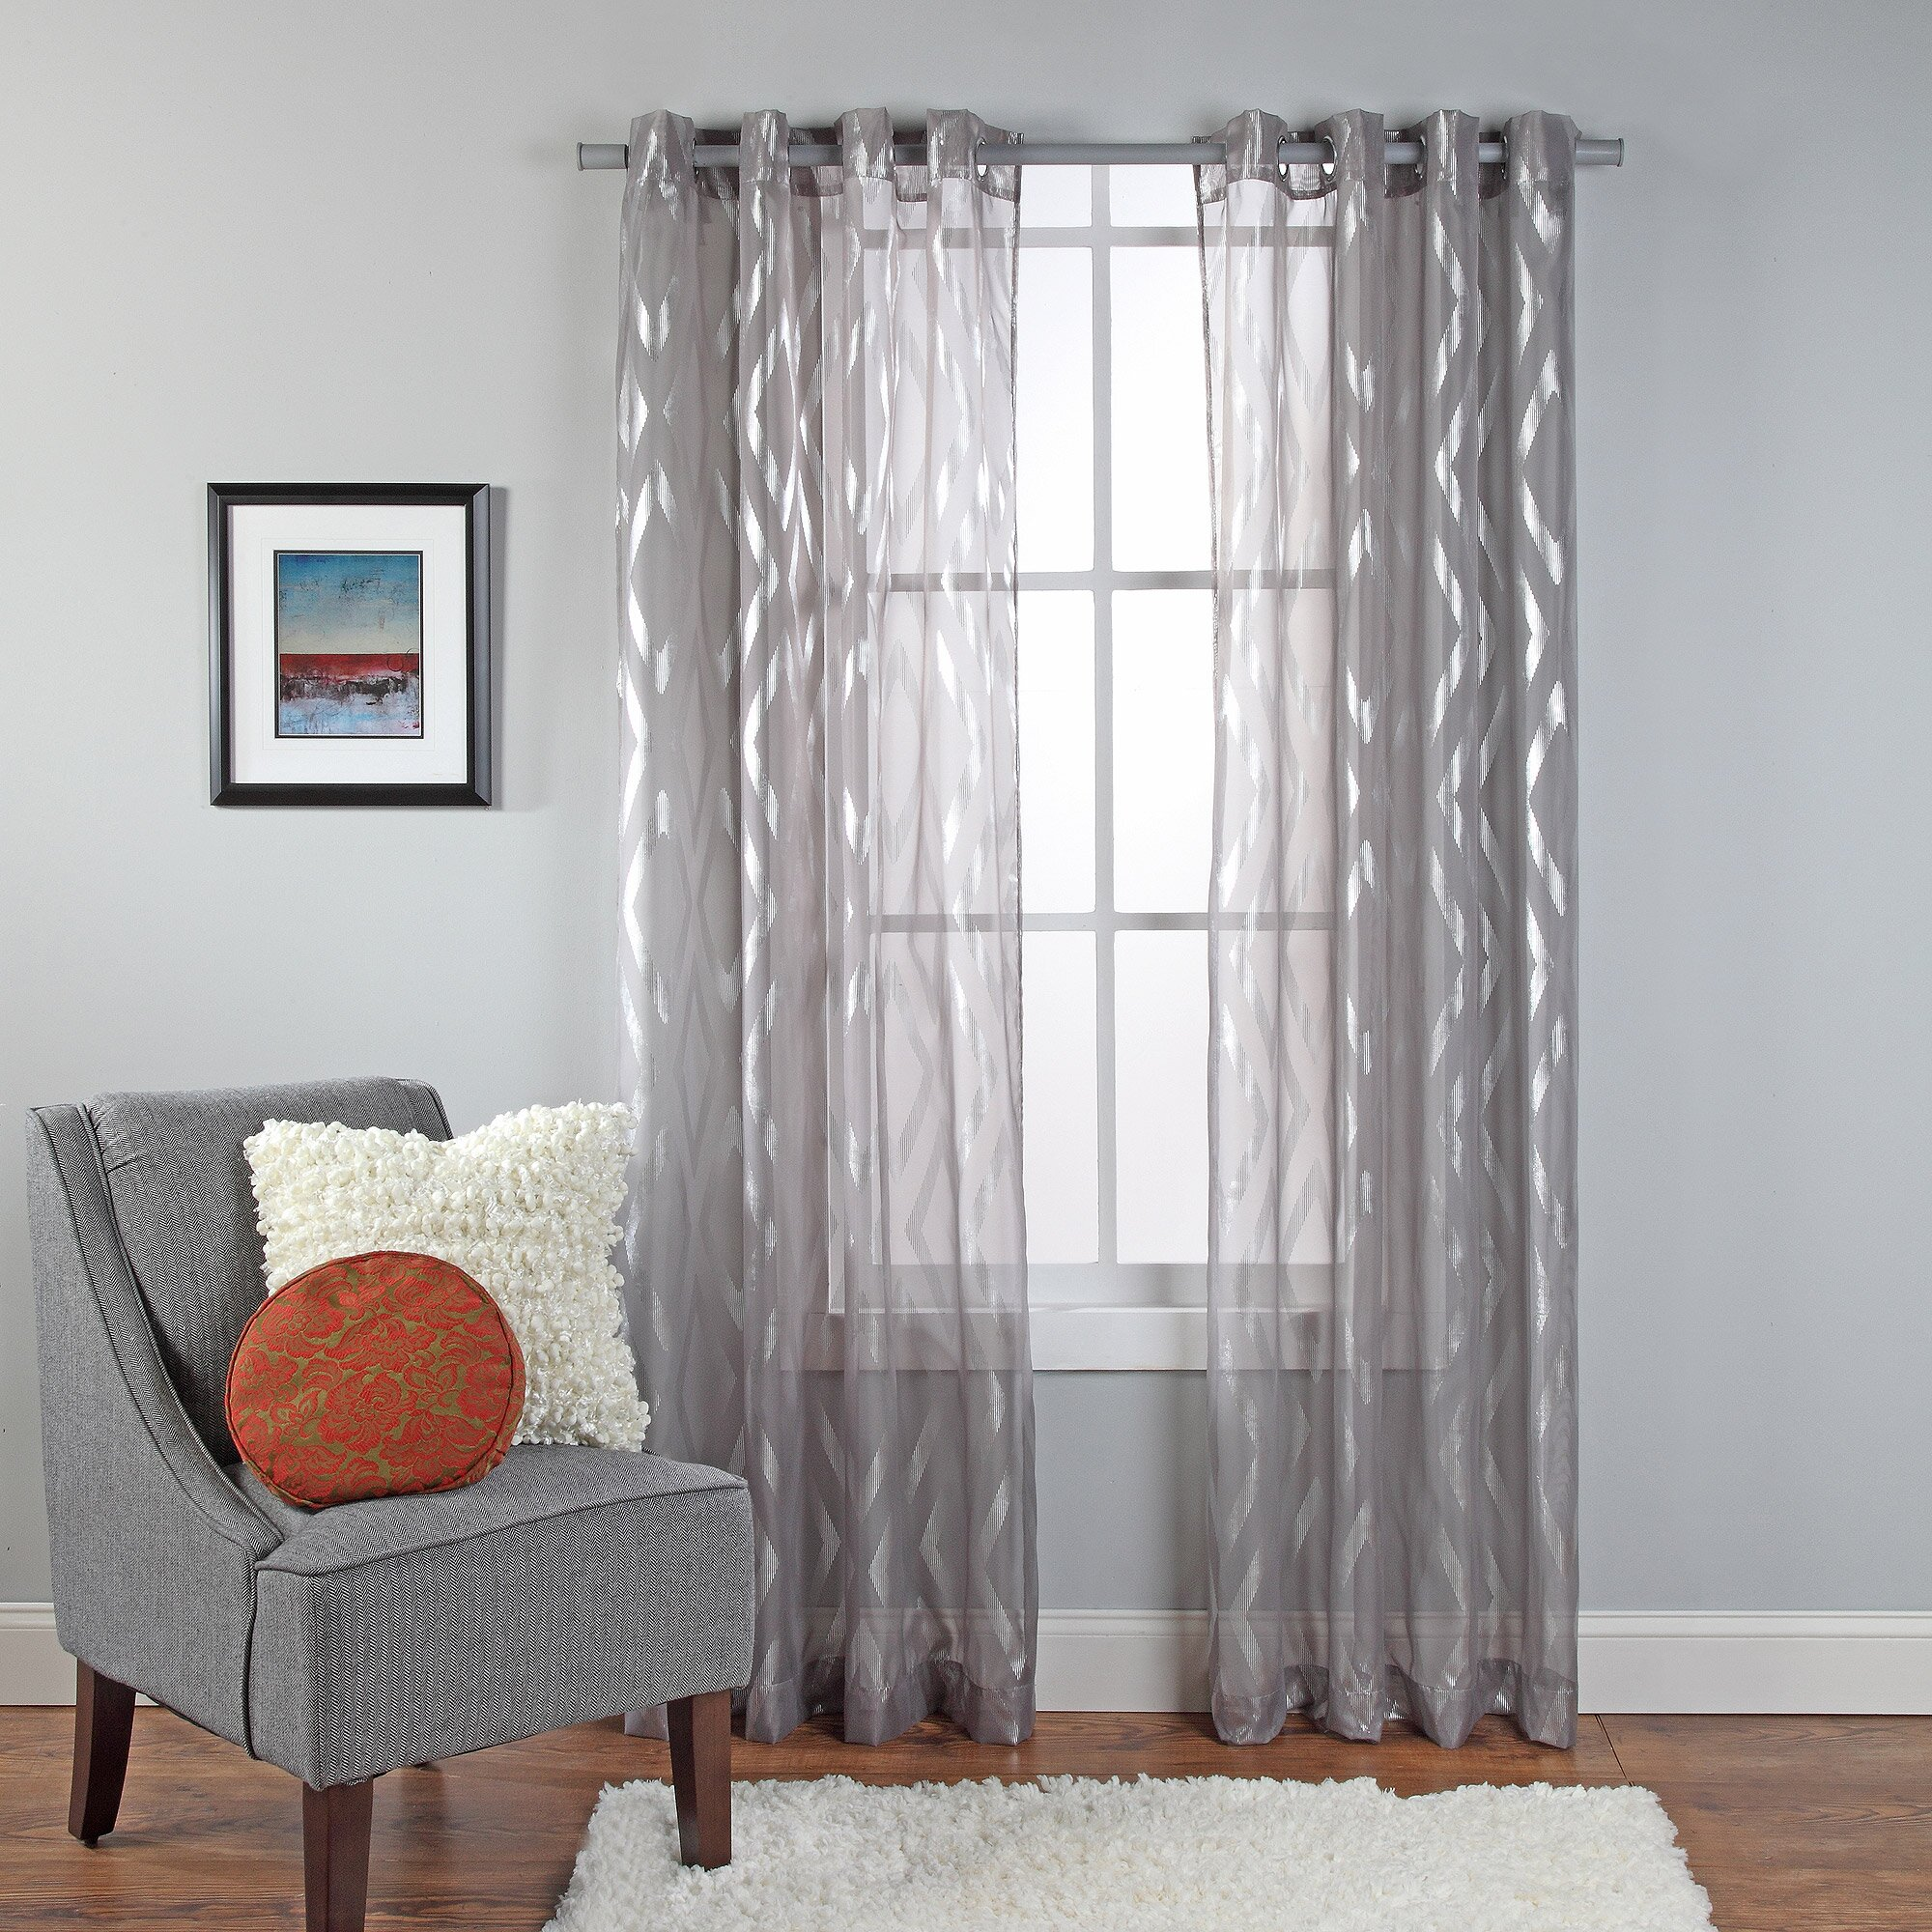 Curtain walmart window curtains curtains walmart for Home drapes and curtains